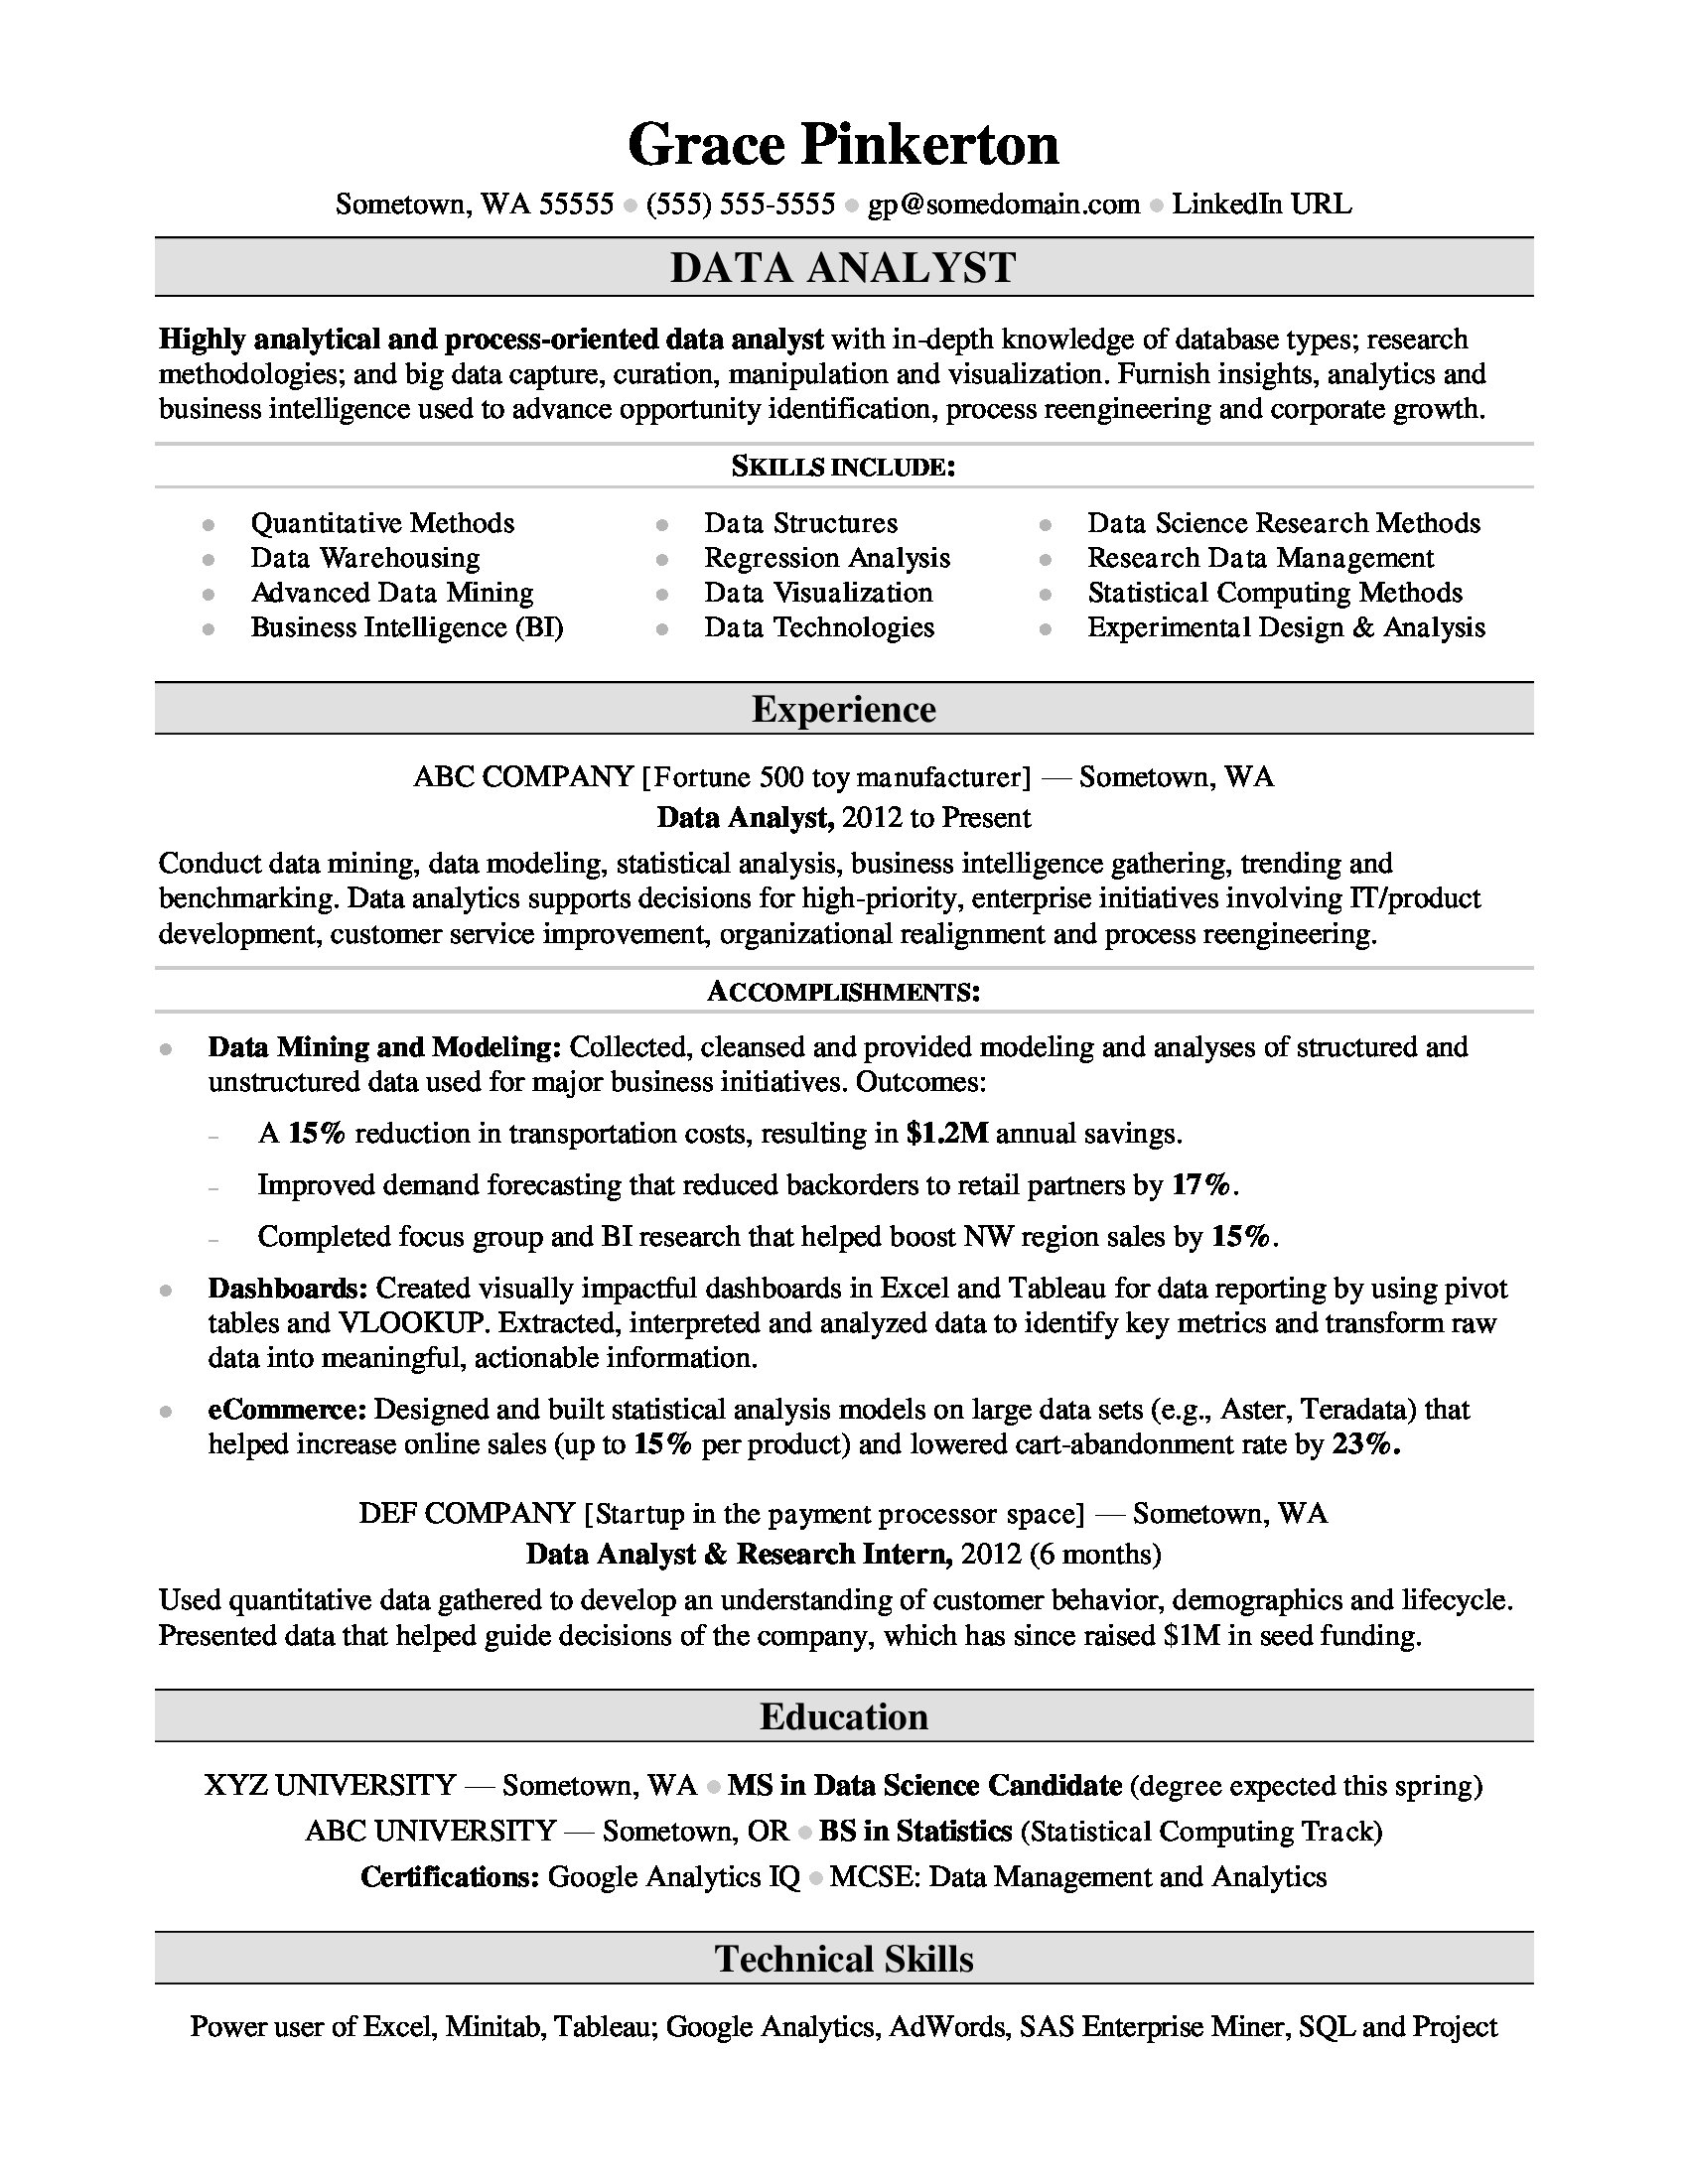 data analyst resume sample monster science skills dataanalyst dental assistant job Resume Data Science Skills Resume